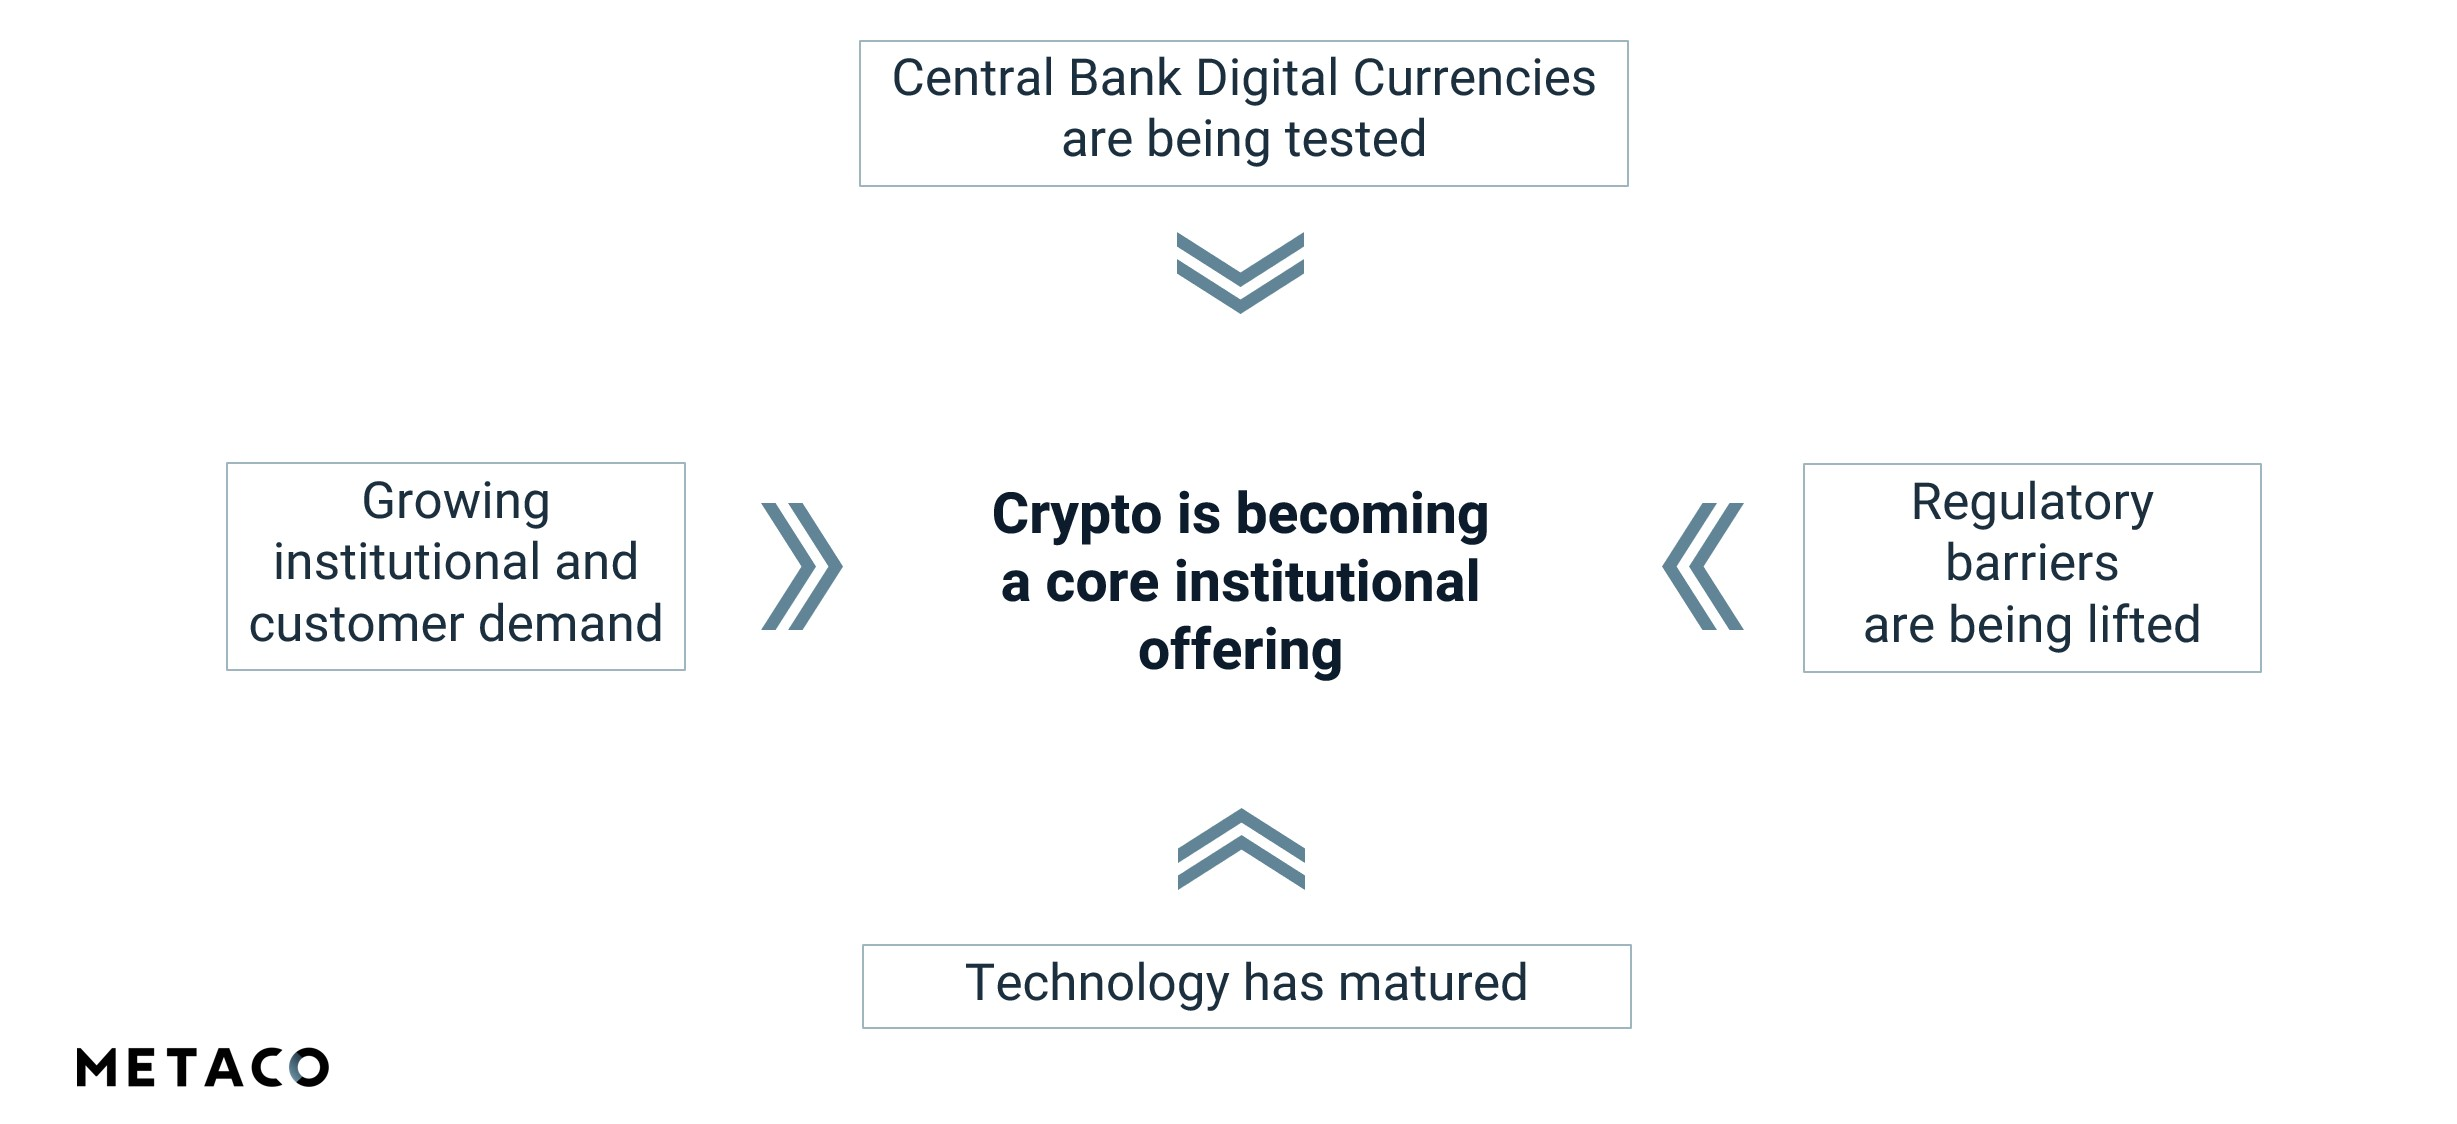 Metaco Diagram - Crypto is becoming a core institutional offering